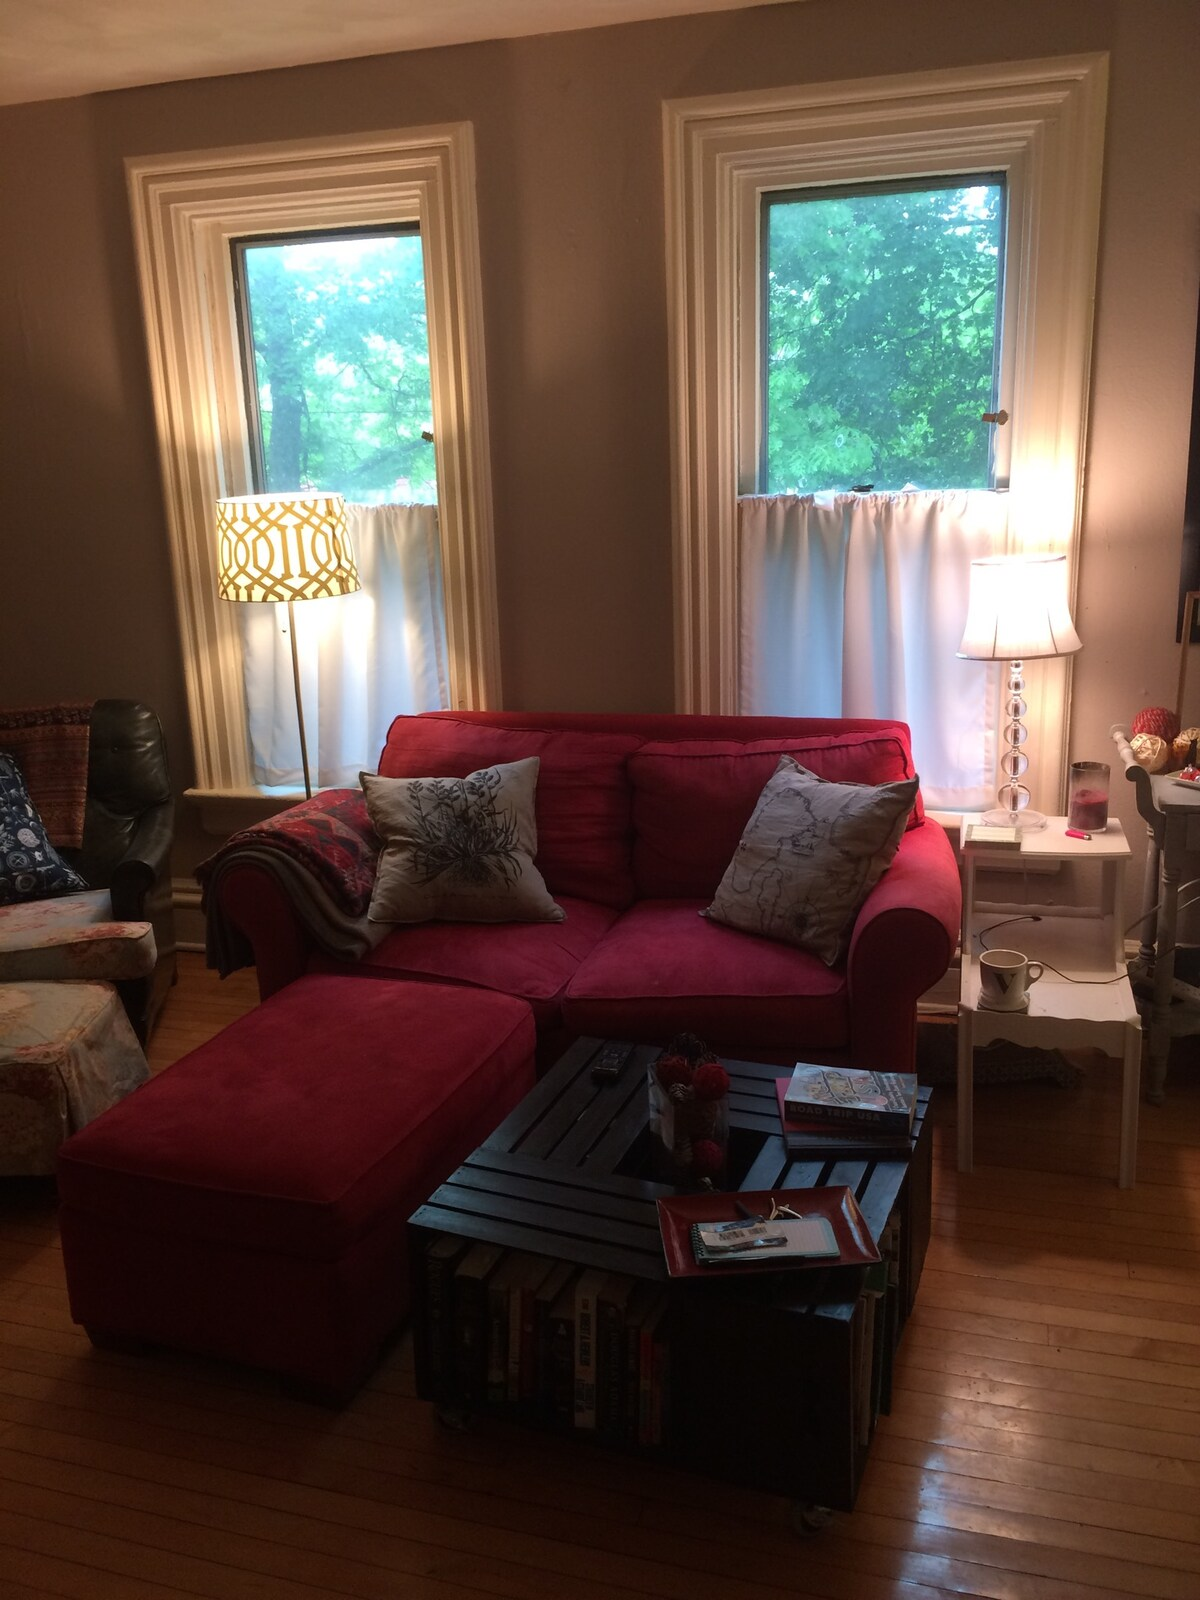 Cozy BD on MSN's charming East Side